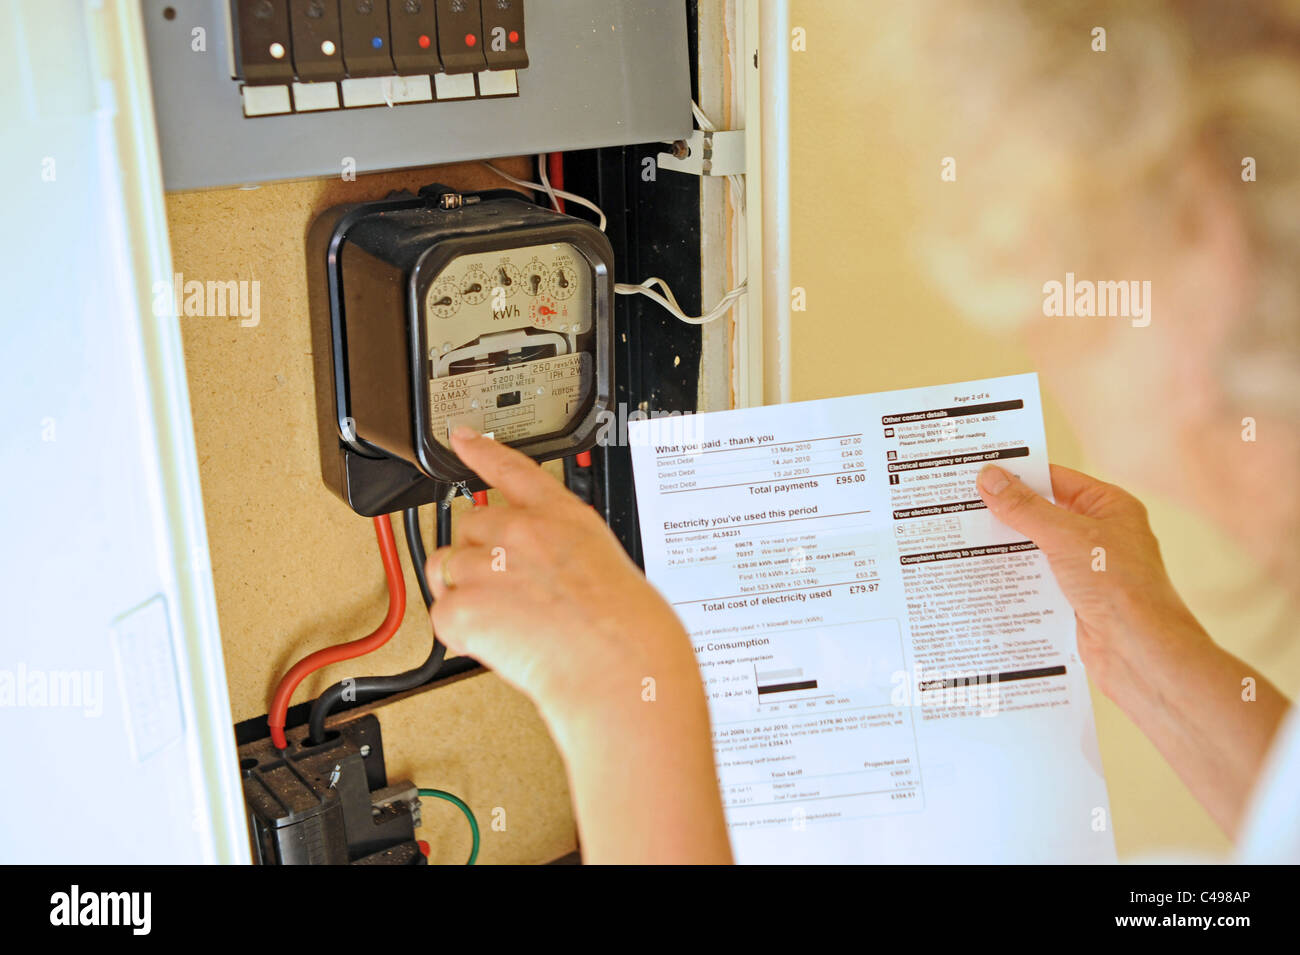 Woman contemplating the rising energy prices and bills in the UK as she reads her electricity meter - Stock Image